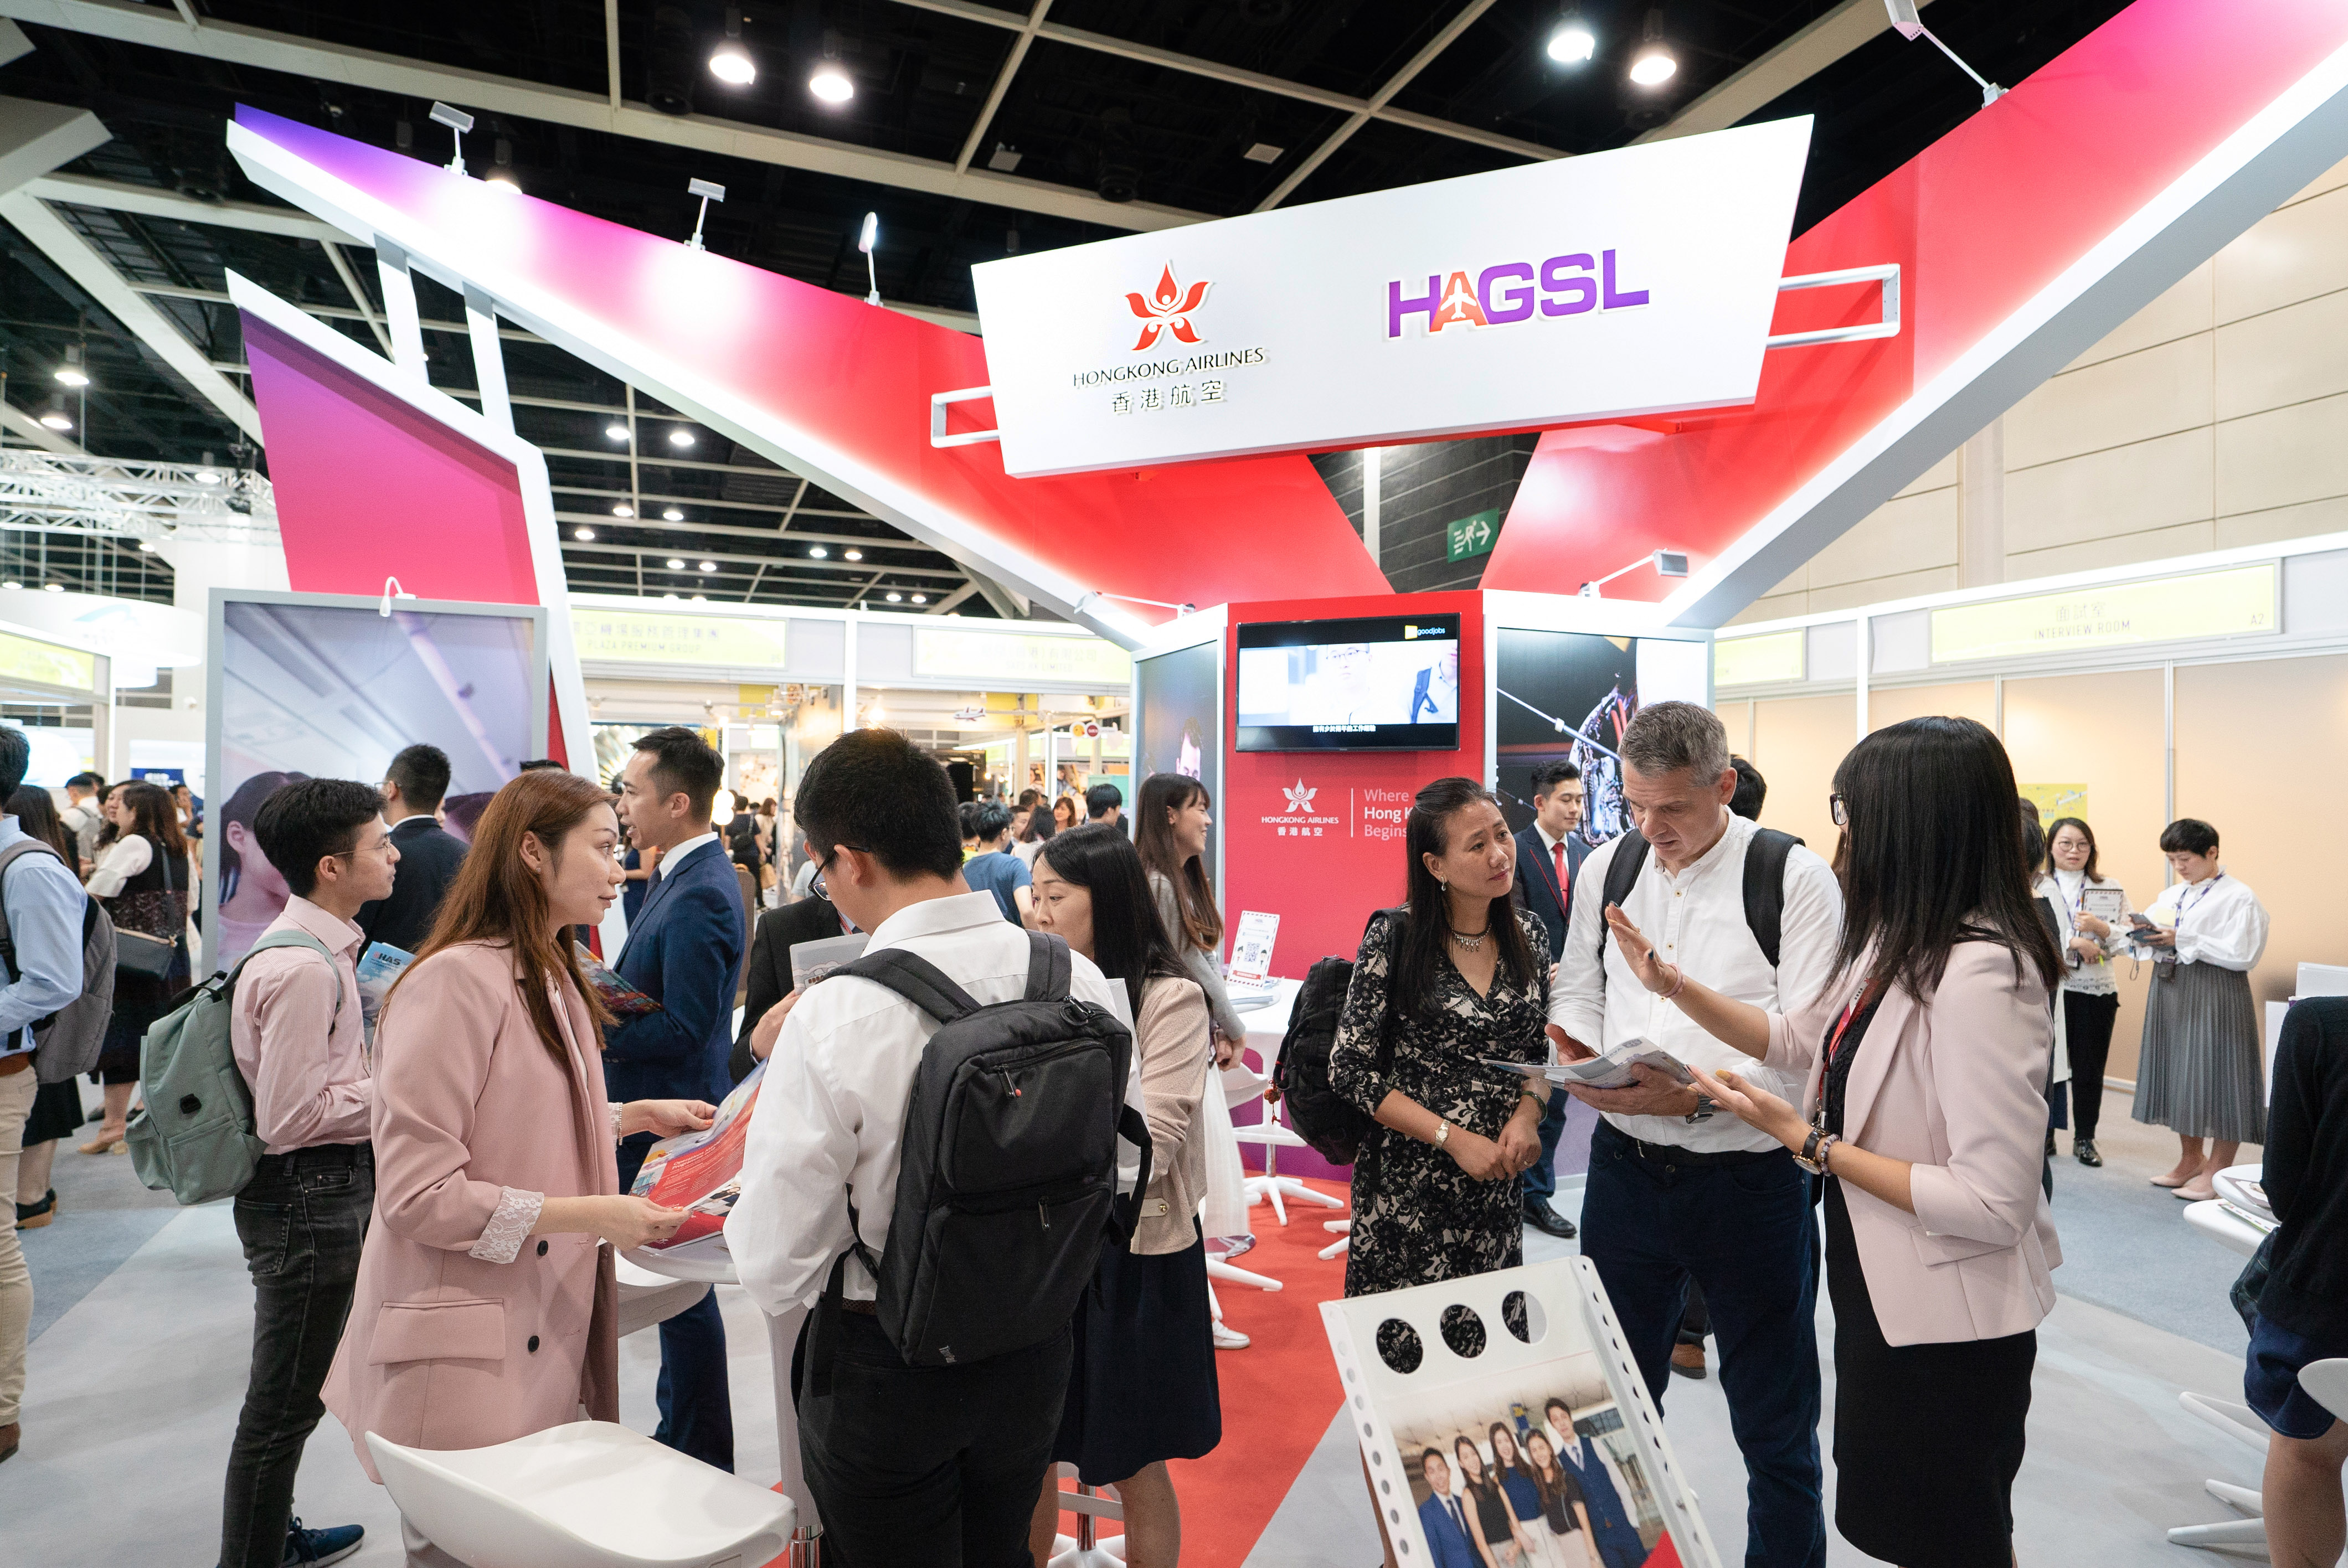 Hong Kong Airlines booth at HKIA Career Expo 2019